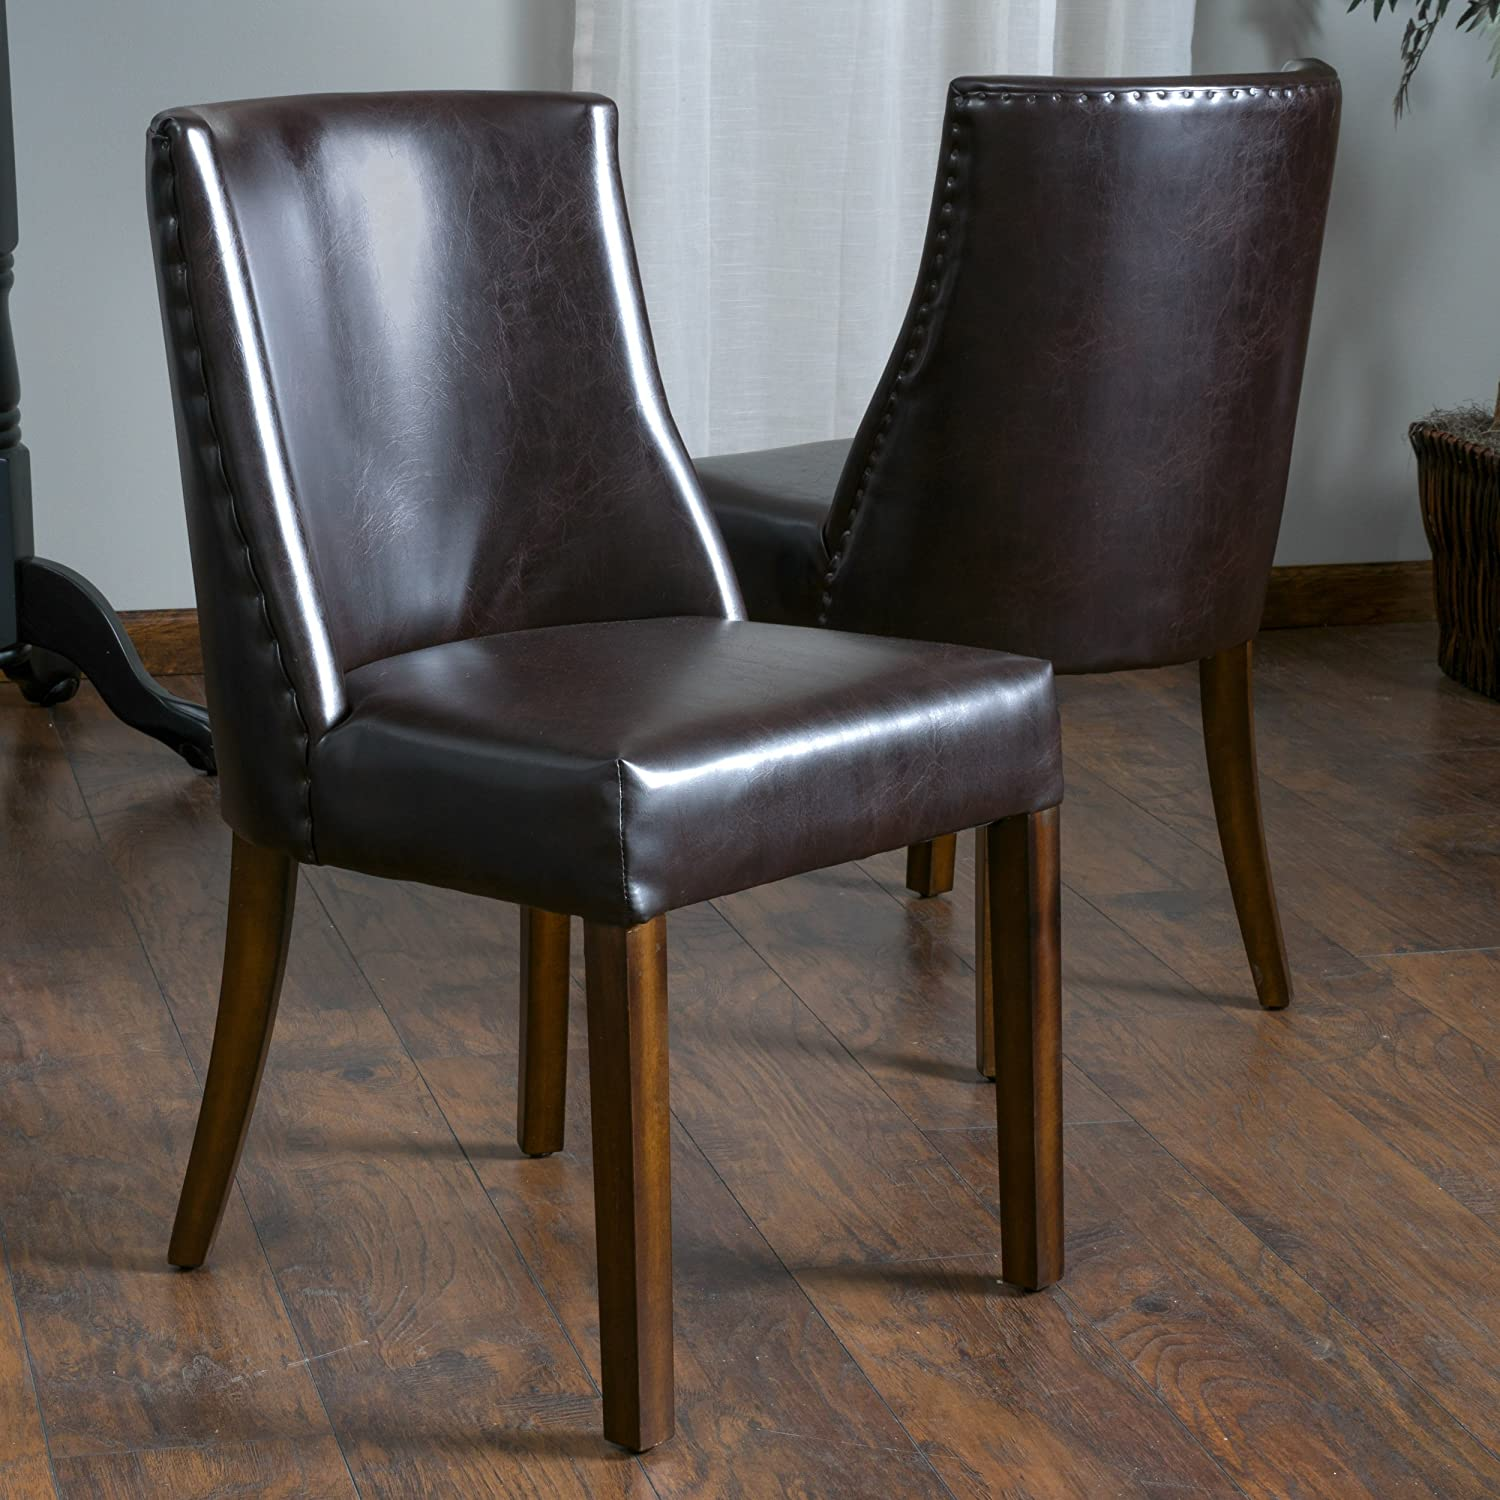 Christopher Knight Home Harman Dining Chair Set Of 2 , Brown